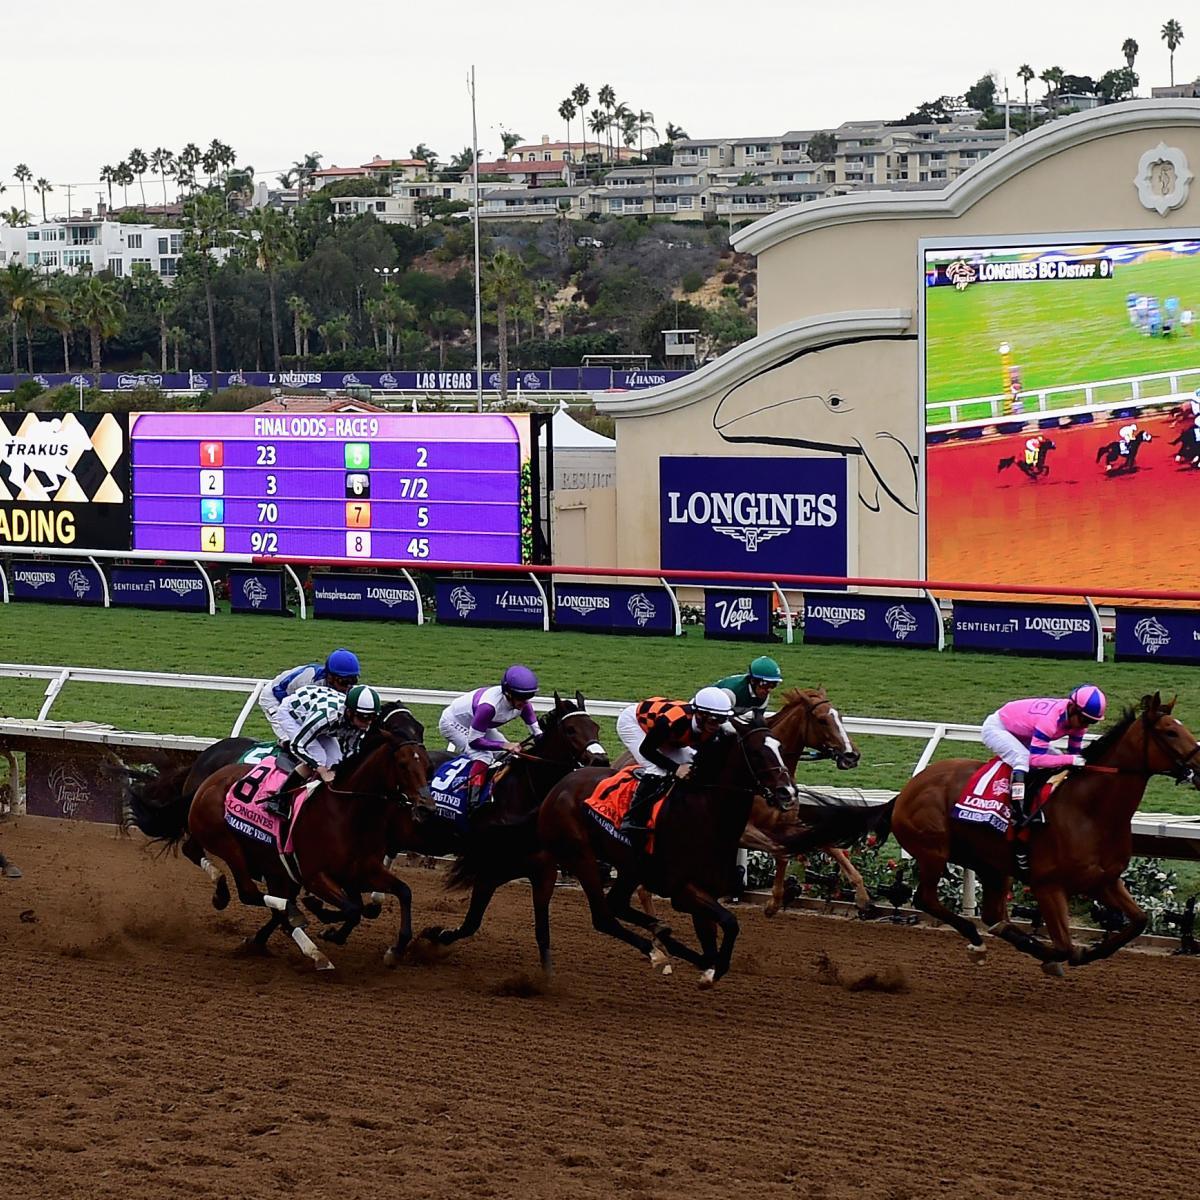 Breeders Cup 2017 Results Tracking Winners And Prize